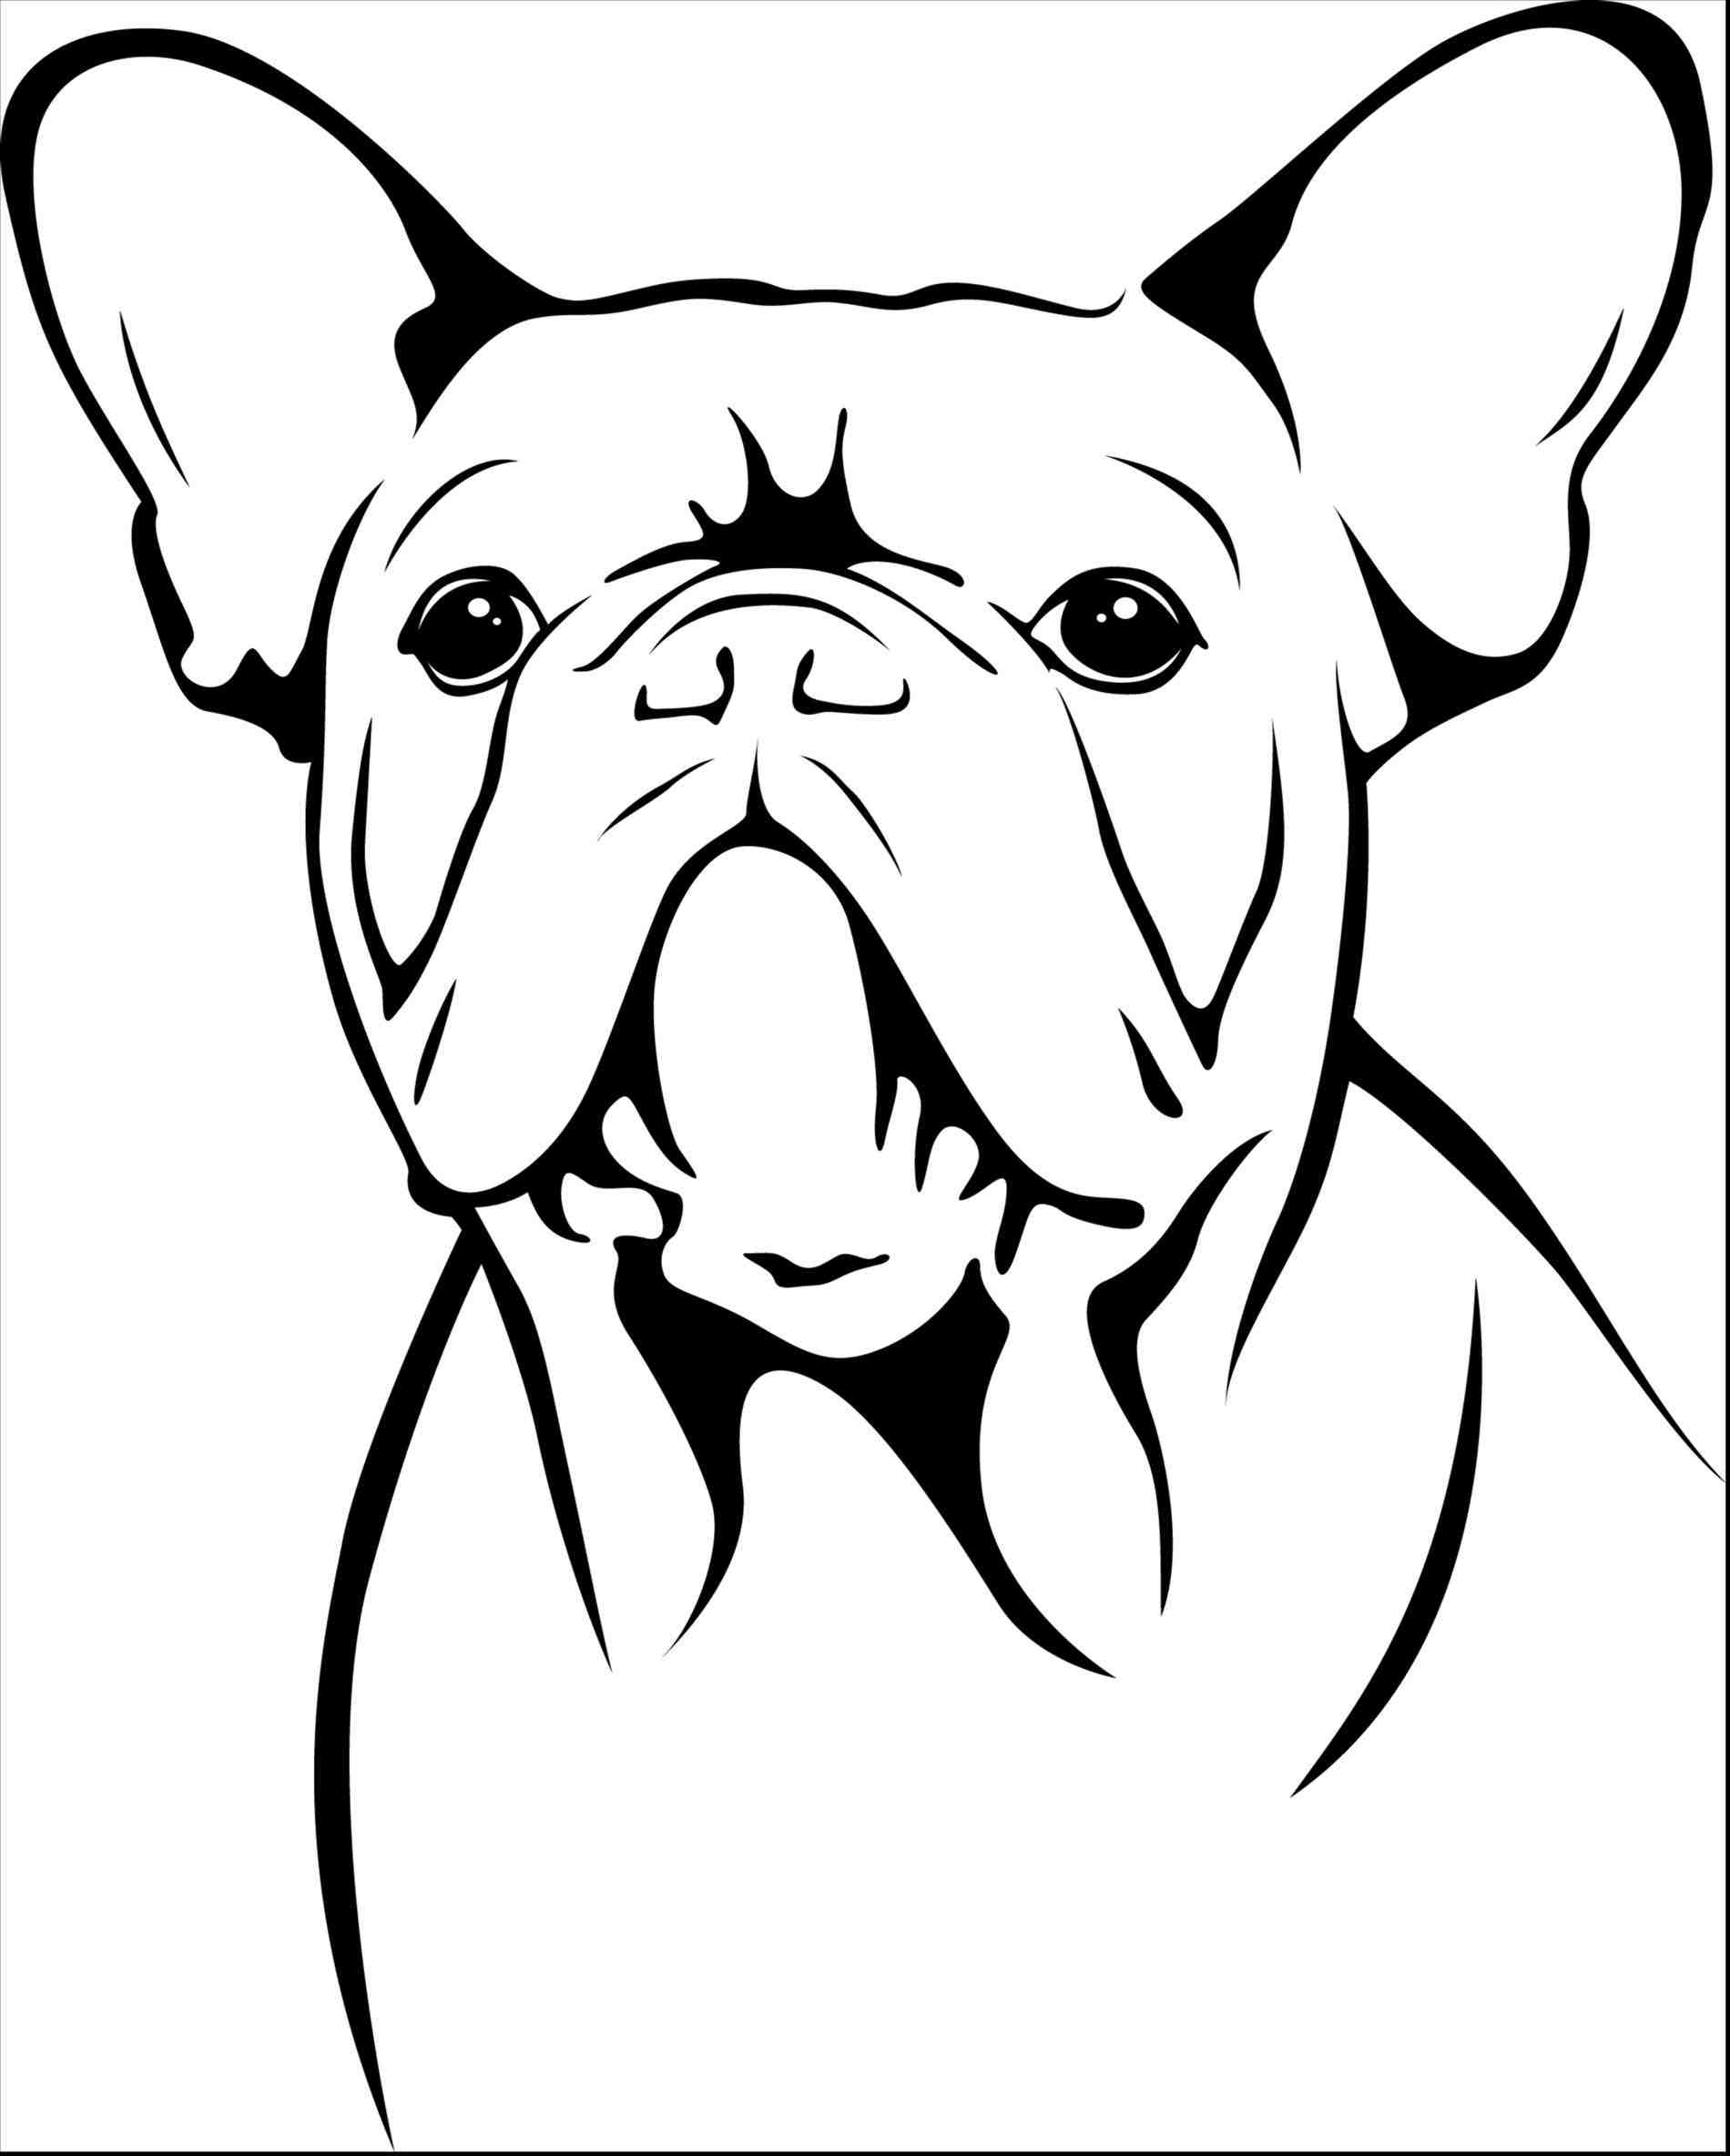 1900x2368 Color Wesome N How To Draw A Bulldog Mascot Wesome Pencil Nd